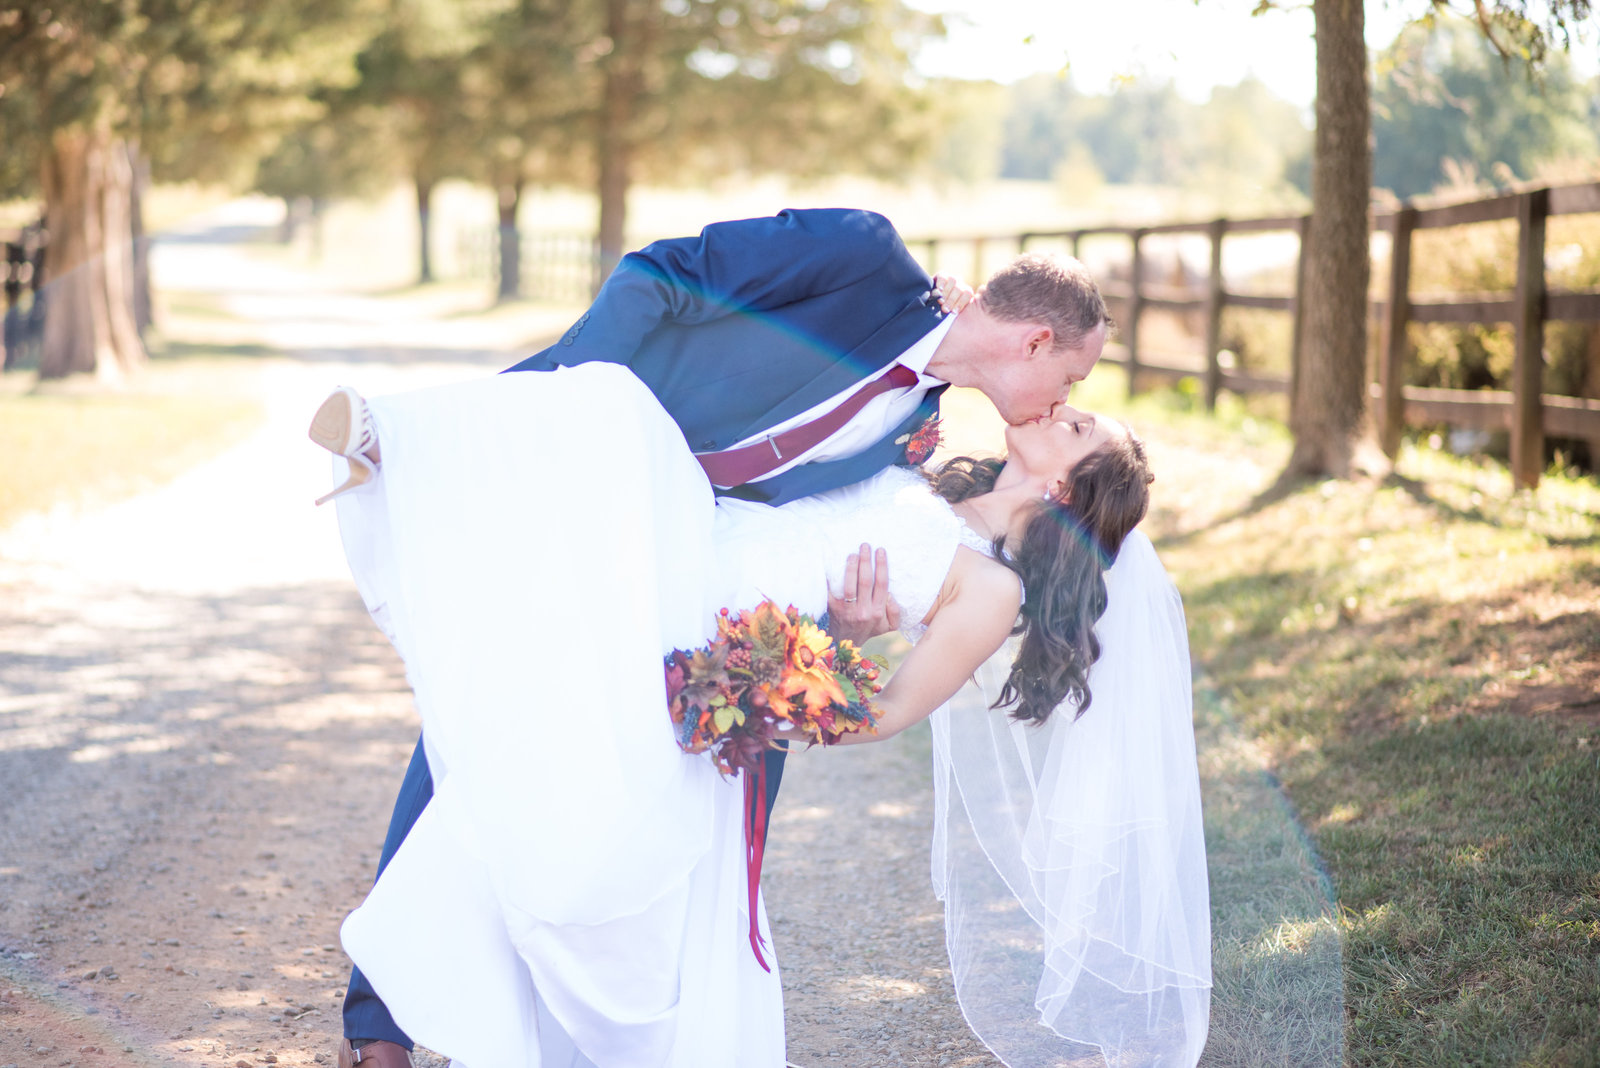 Angie+Jesse-Wolftrap-Farm-Wedding-VA-MermaidlakePhotography-638-42